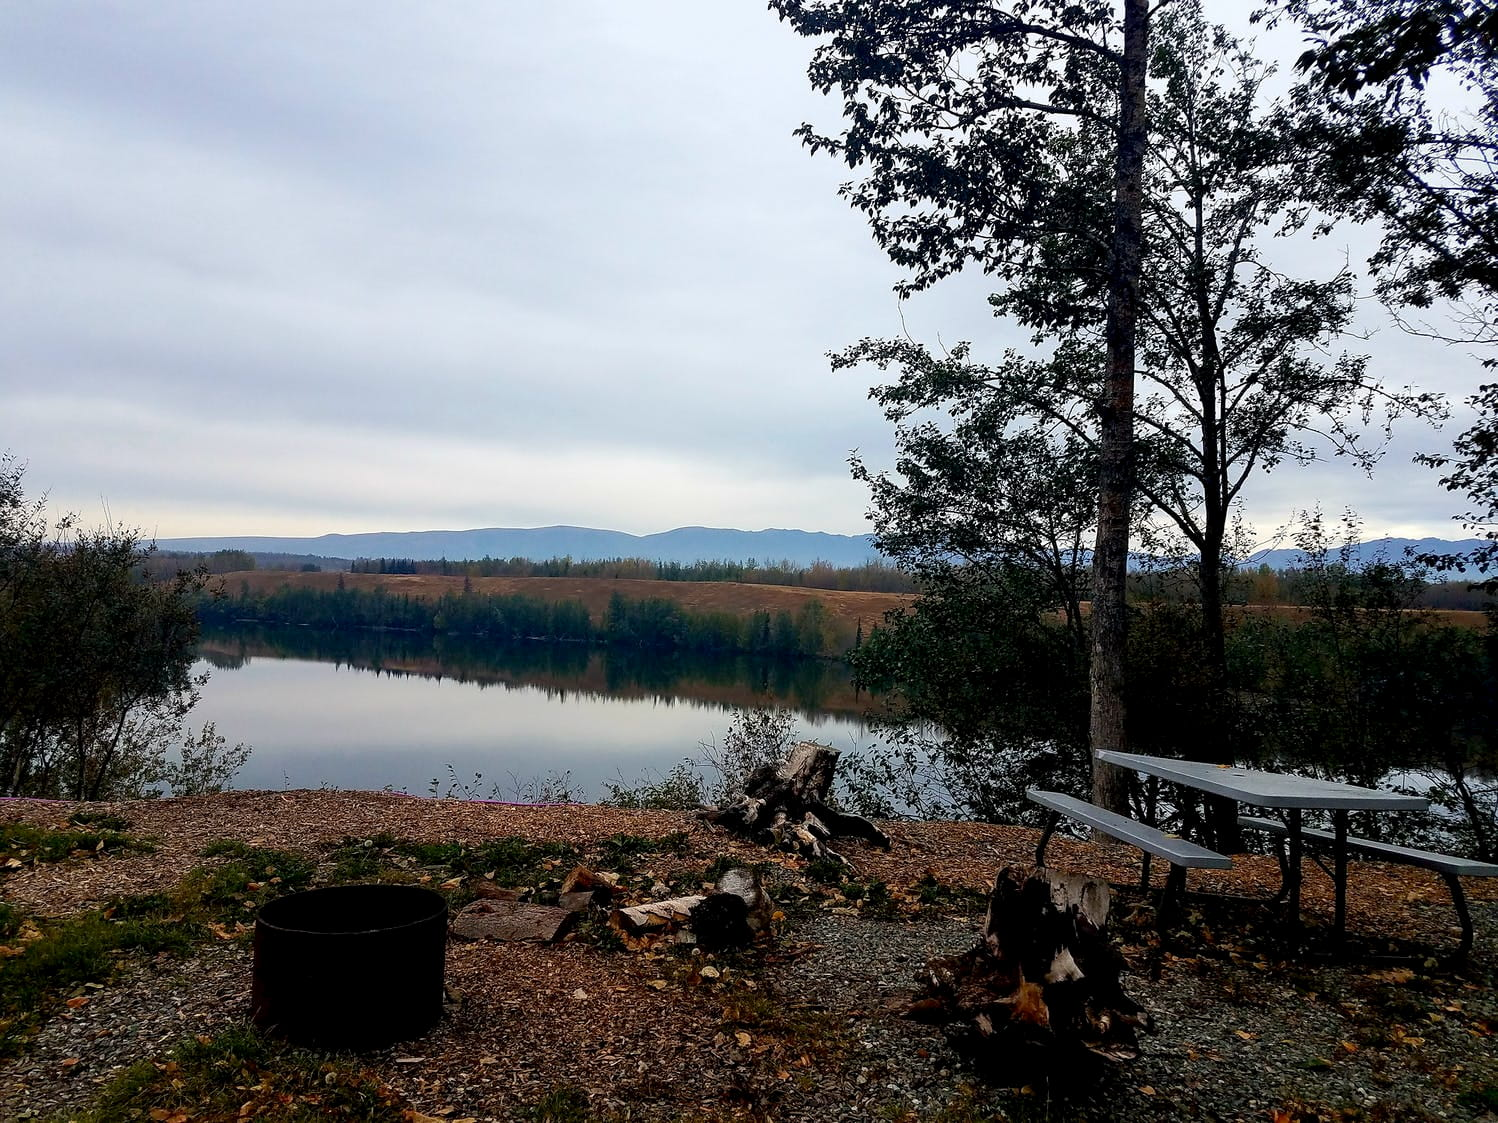 Campsite with picnic table and fire ring in Autumn beside a lake in Alaska.